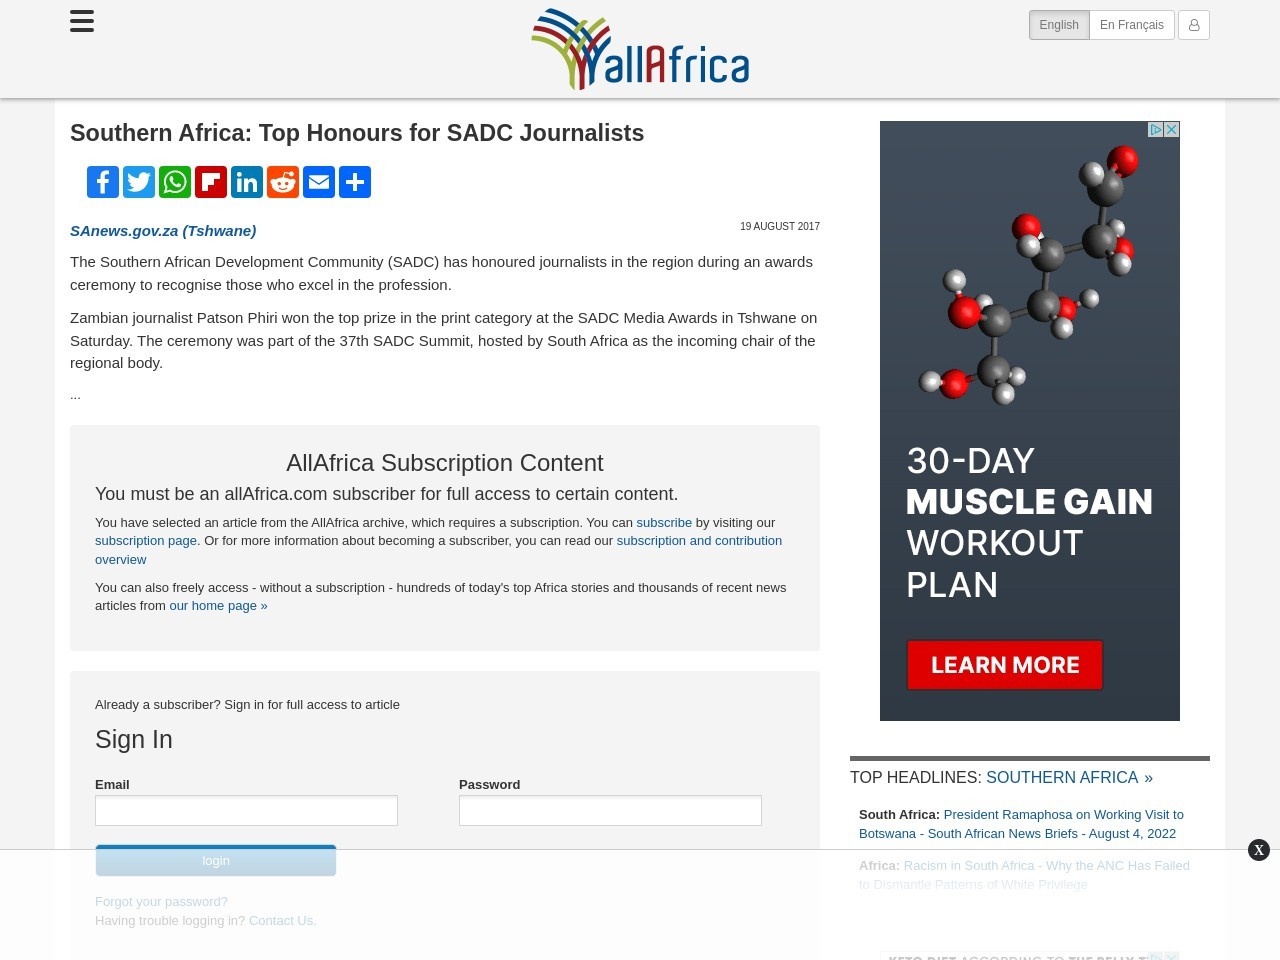 Southern Africa: Top Honours for SADC Journalists